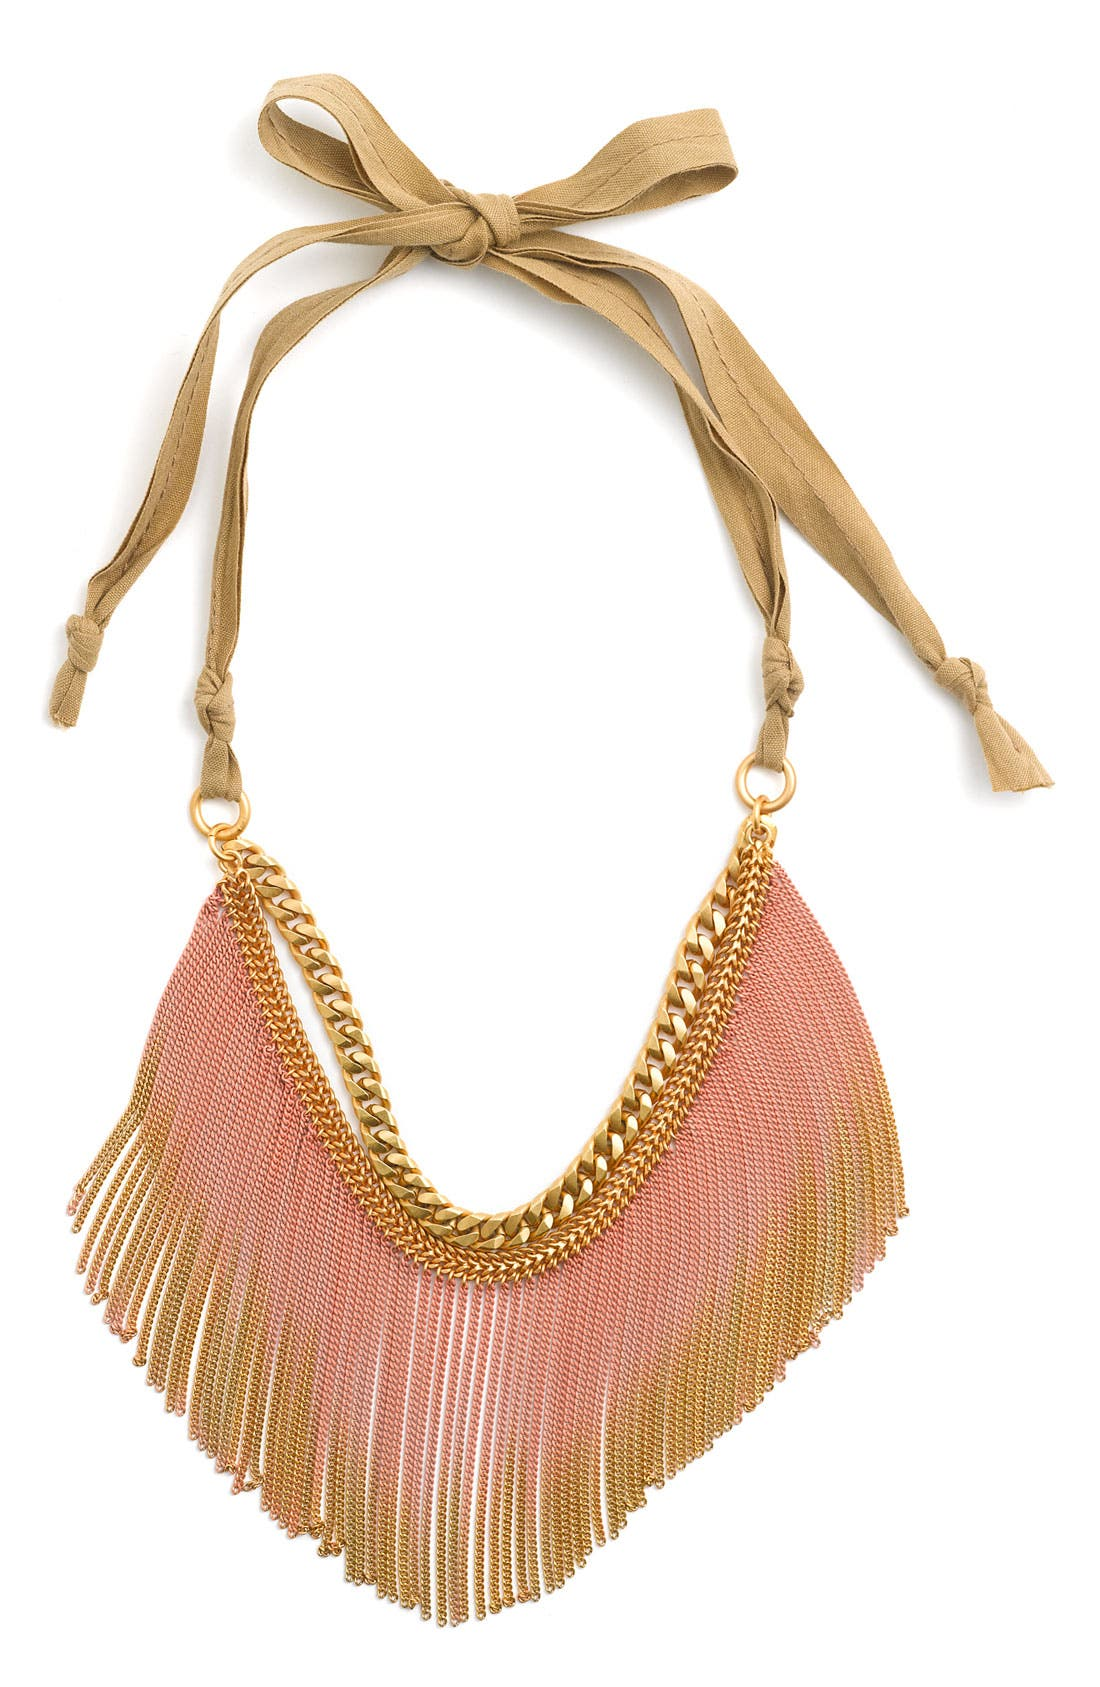 Alternate Image 1 Selected - Juicy Couture 'Wanderlust' Gradient Fringe Necklace